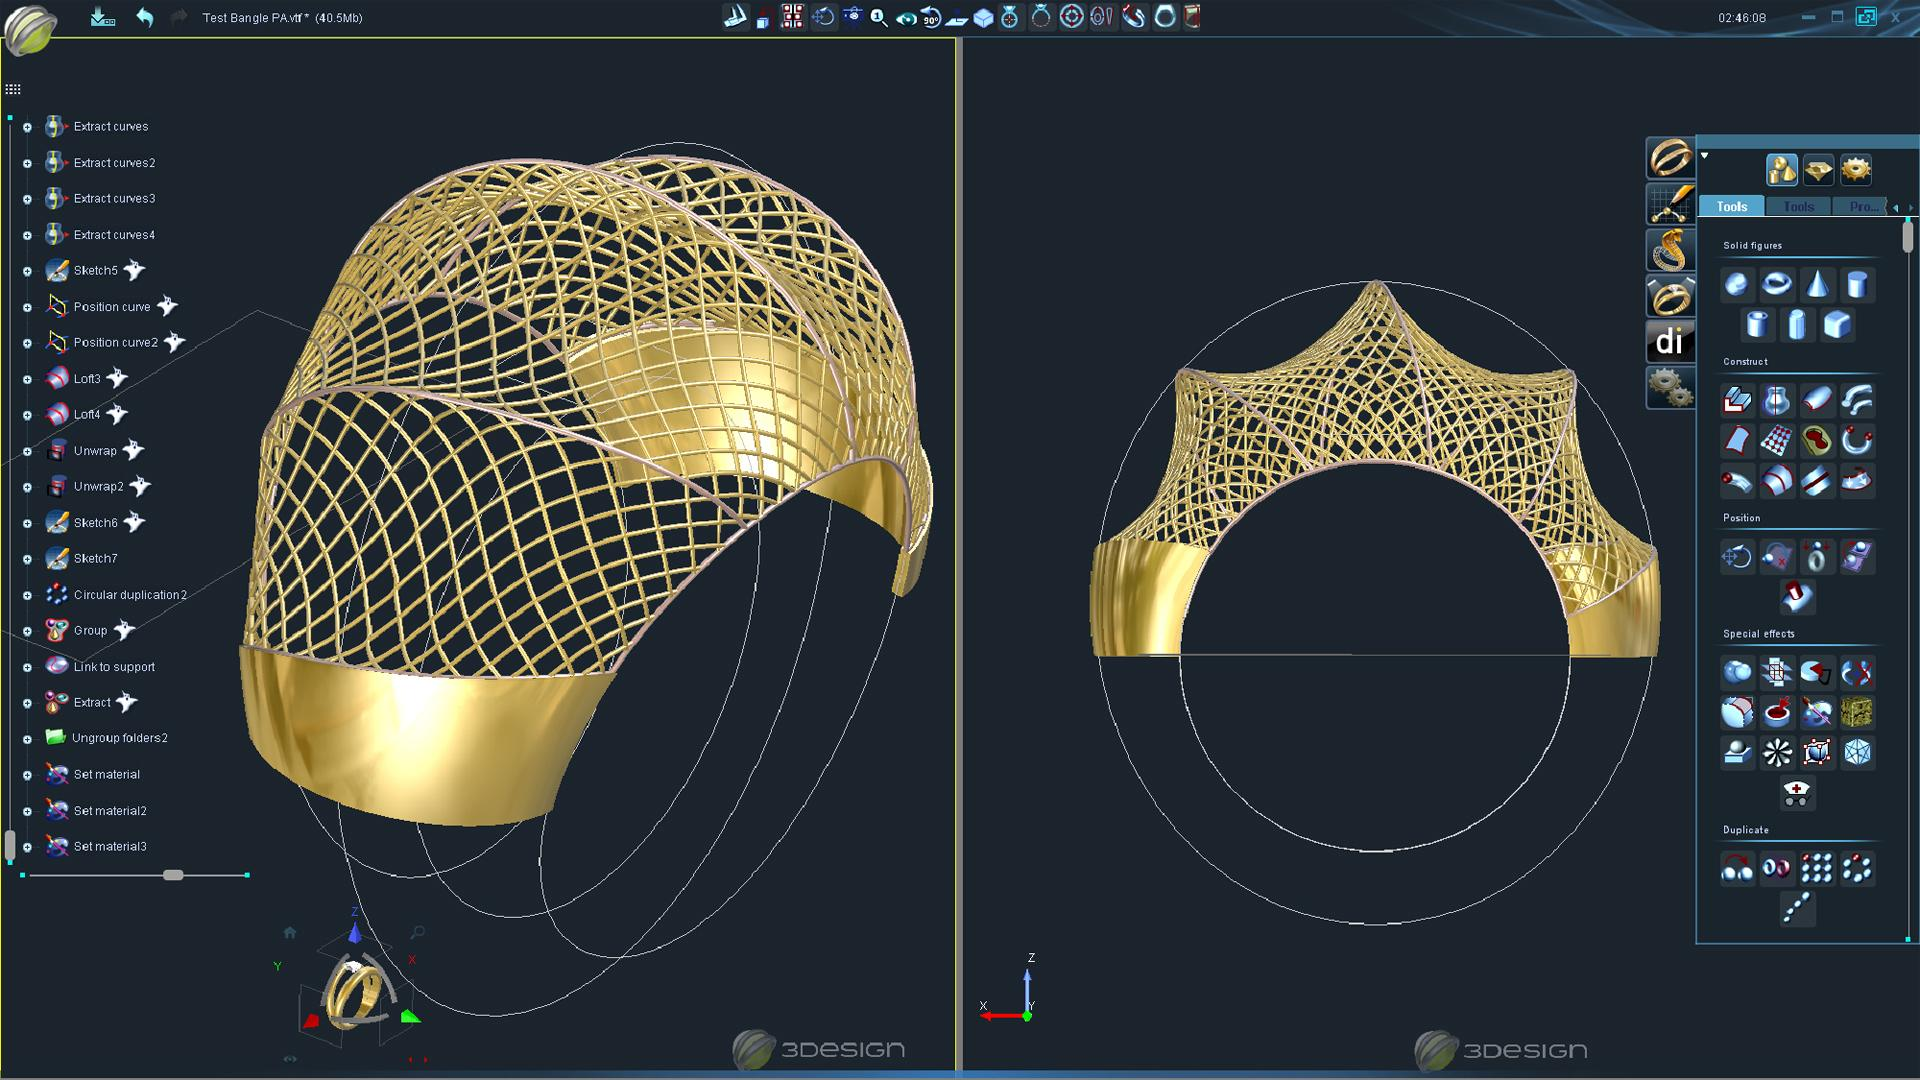 3Design interface : bangle design